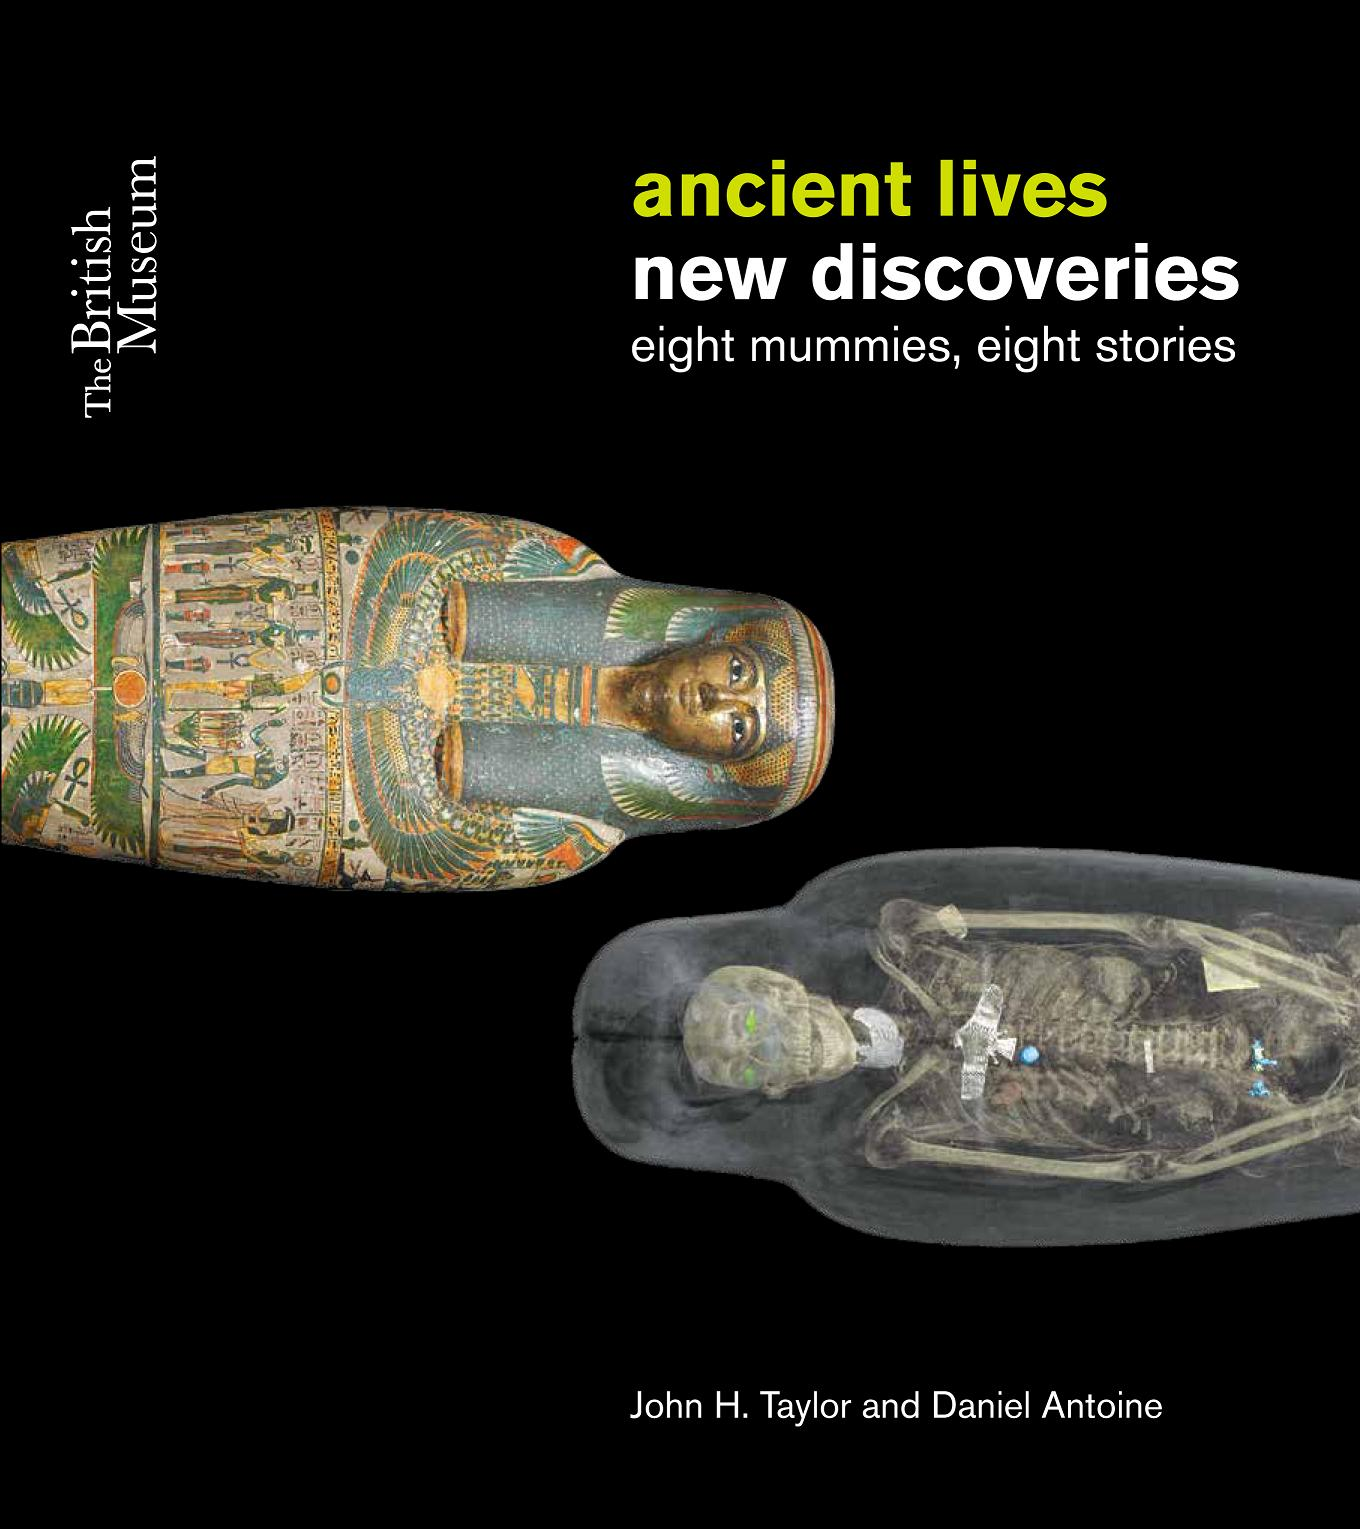 Ancient-Lives-new-discoveries-eight-Egyptian-mummies-eight-stories-ancient-Egypt-exhibition-books-cmc19120_productlarge.jpg